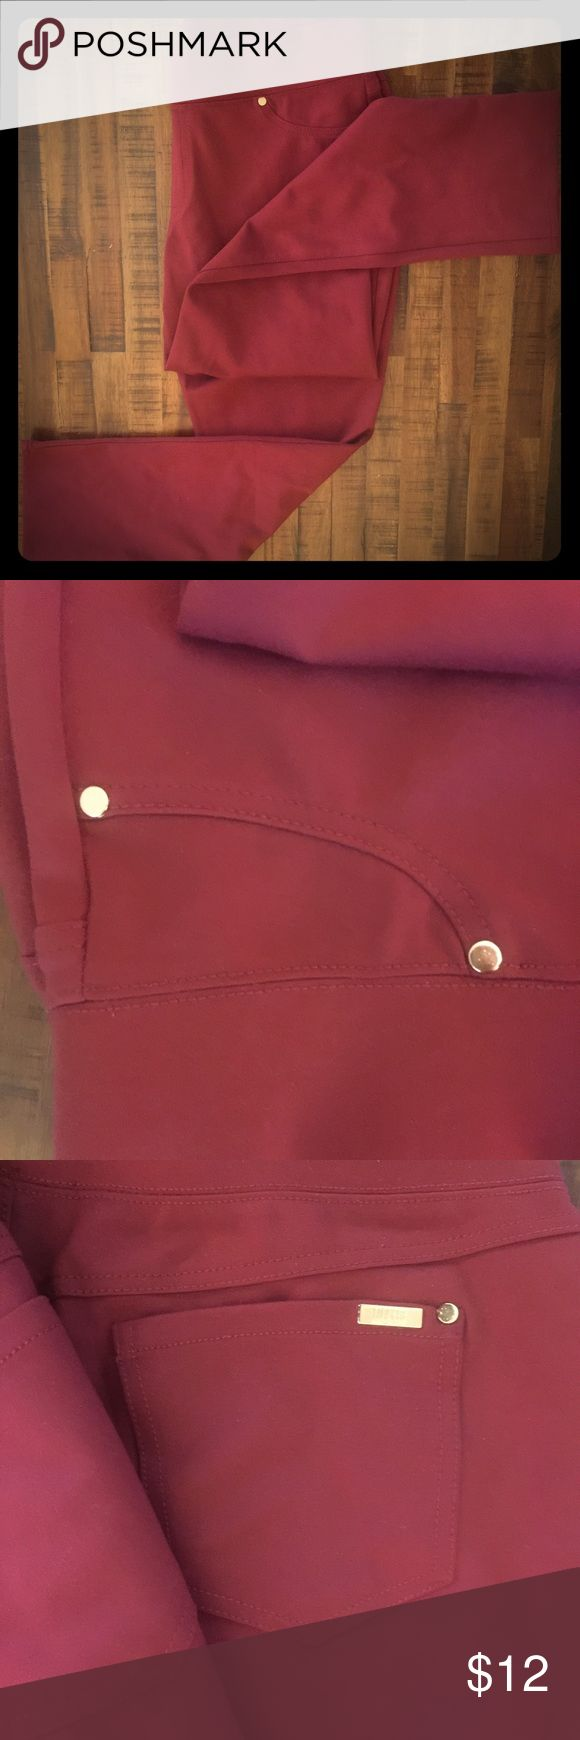 Cranberry Straight Leg Elastic Waist Pants These cranberry colored pants by Monroe and Main are super comfortable while still looking professional and stylish! Faux front pockets, actual back pockets, gold tone rivets, and a thick elastic waistband with no button or zipper. Monroe & Main Pants Straight Leg